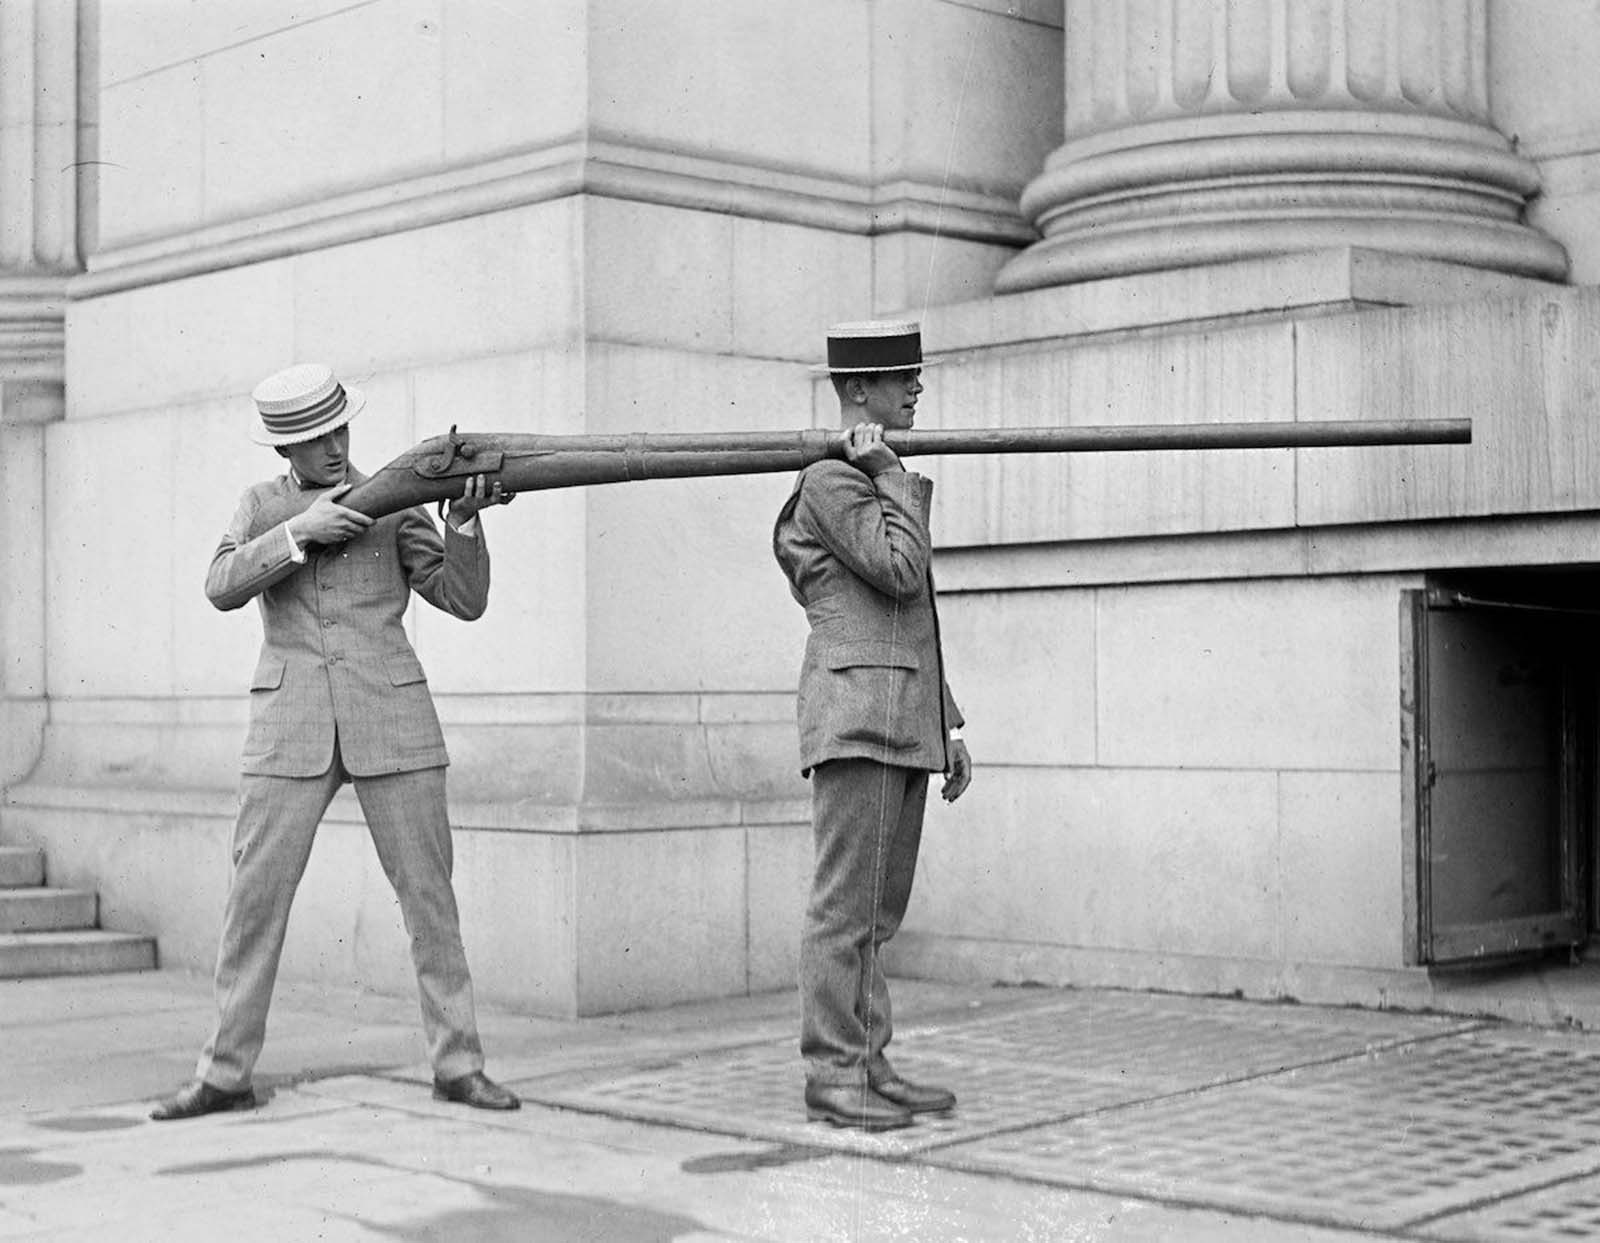 A Punt Gun, used for duck hunting but were banned because